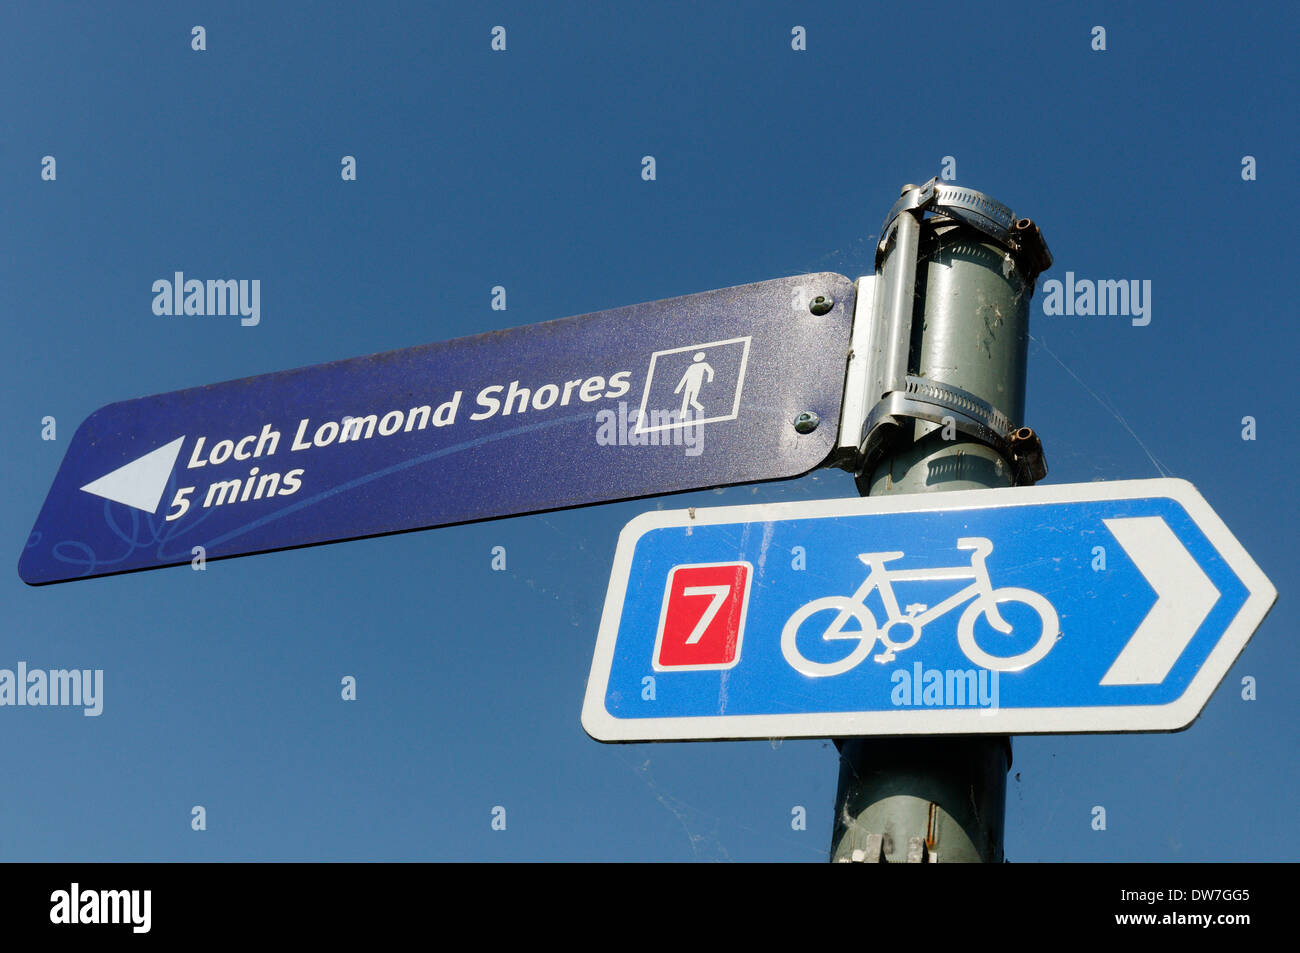 Signs for a cycle path and footpat hto Loch Lomond in Scotland Stock Photo